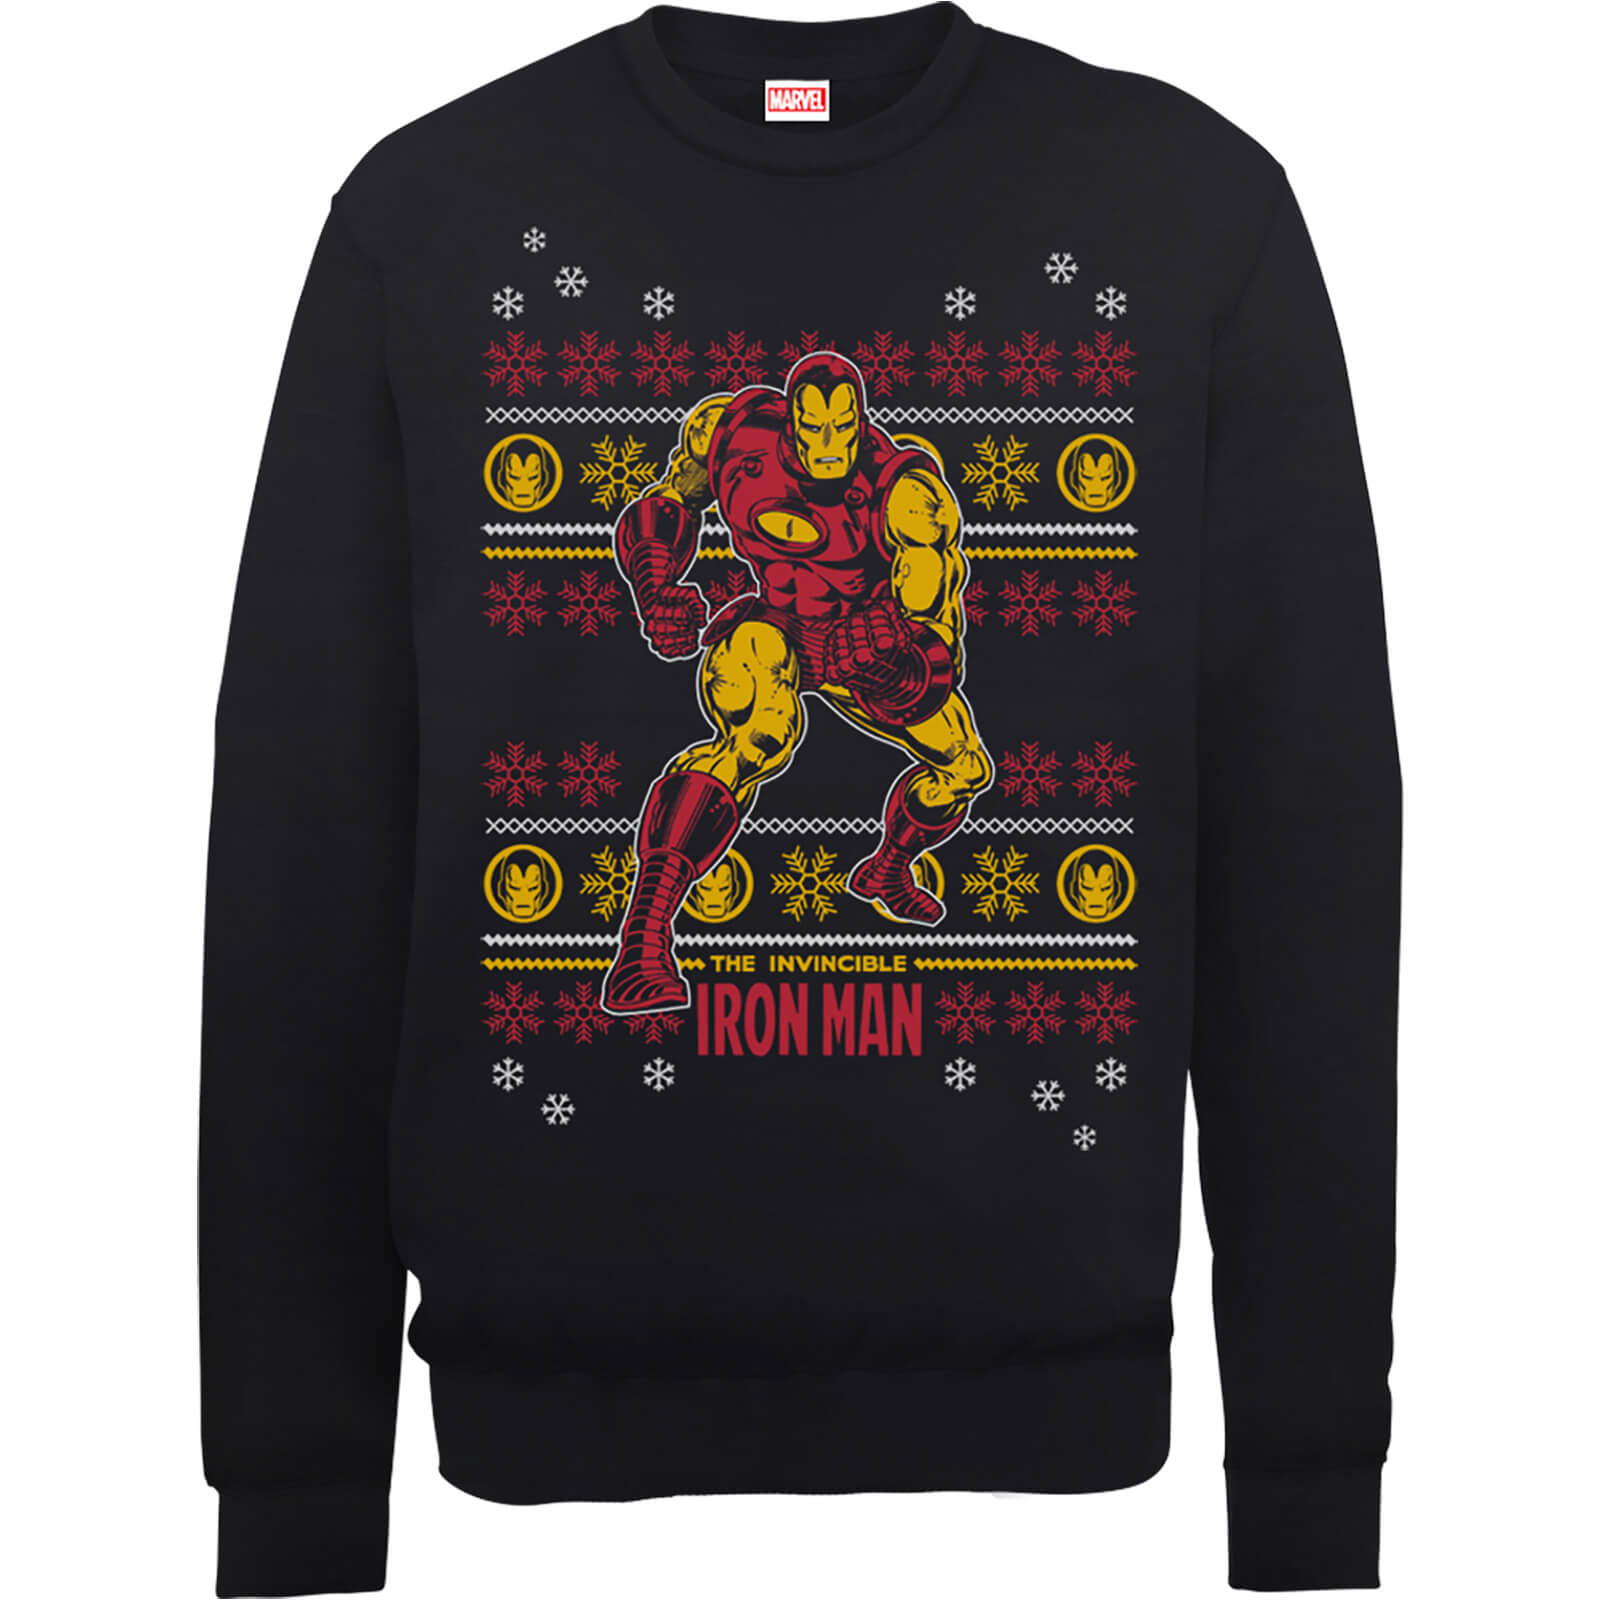 Marvel Comics The Invincible Ironman Black Christmas Sweatshirt